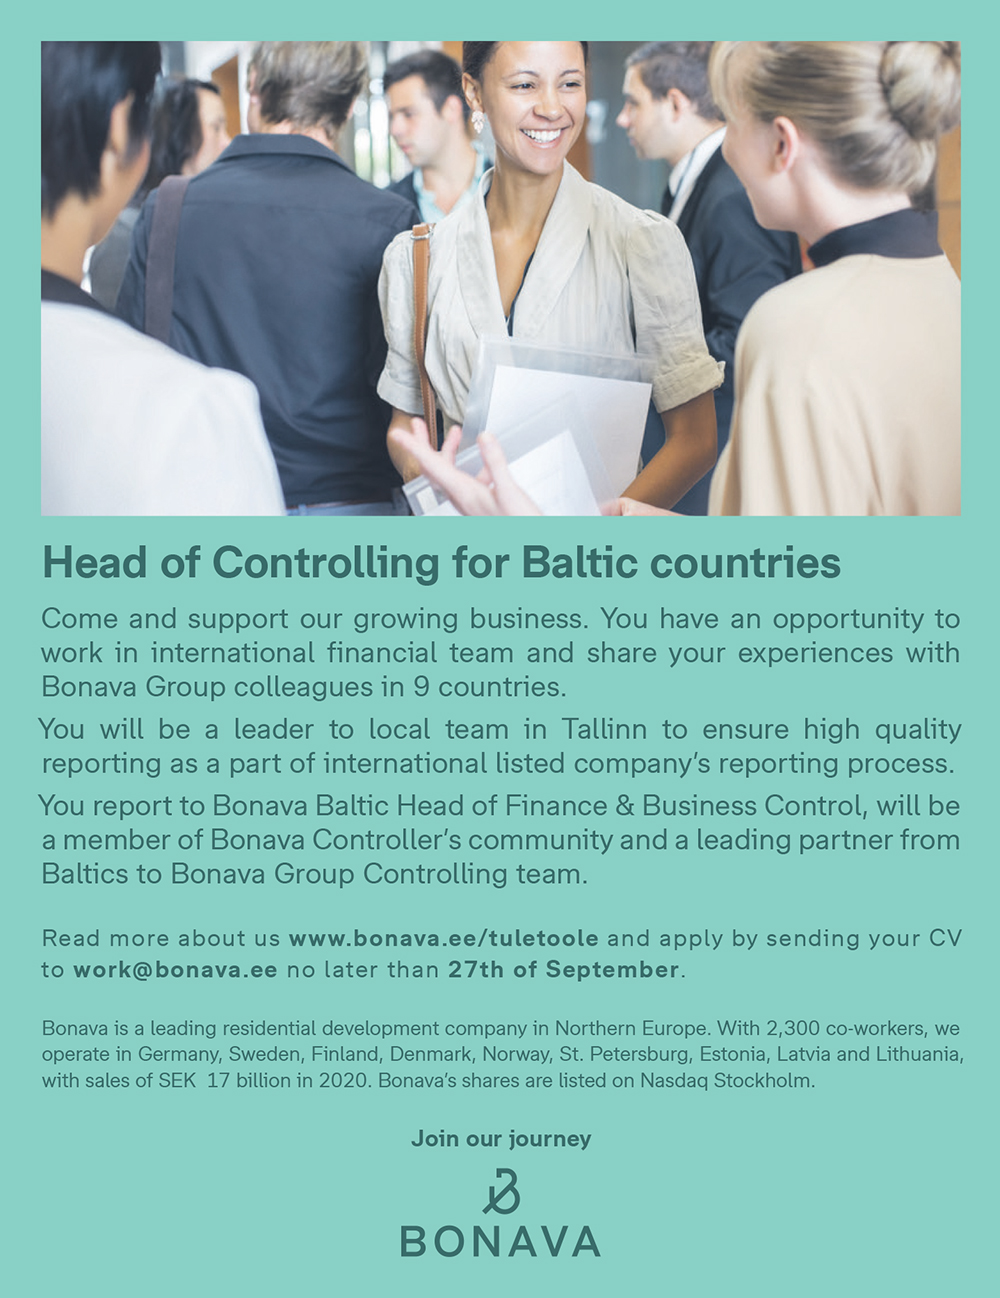 HEAD OF CONTROLLING FOR BALTIC COUNTRIES